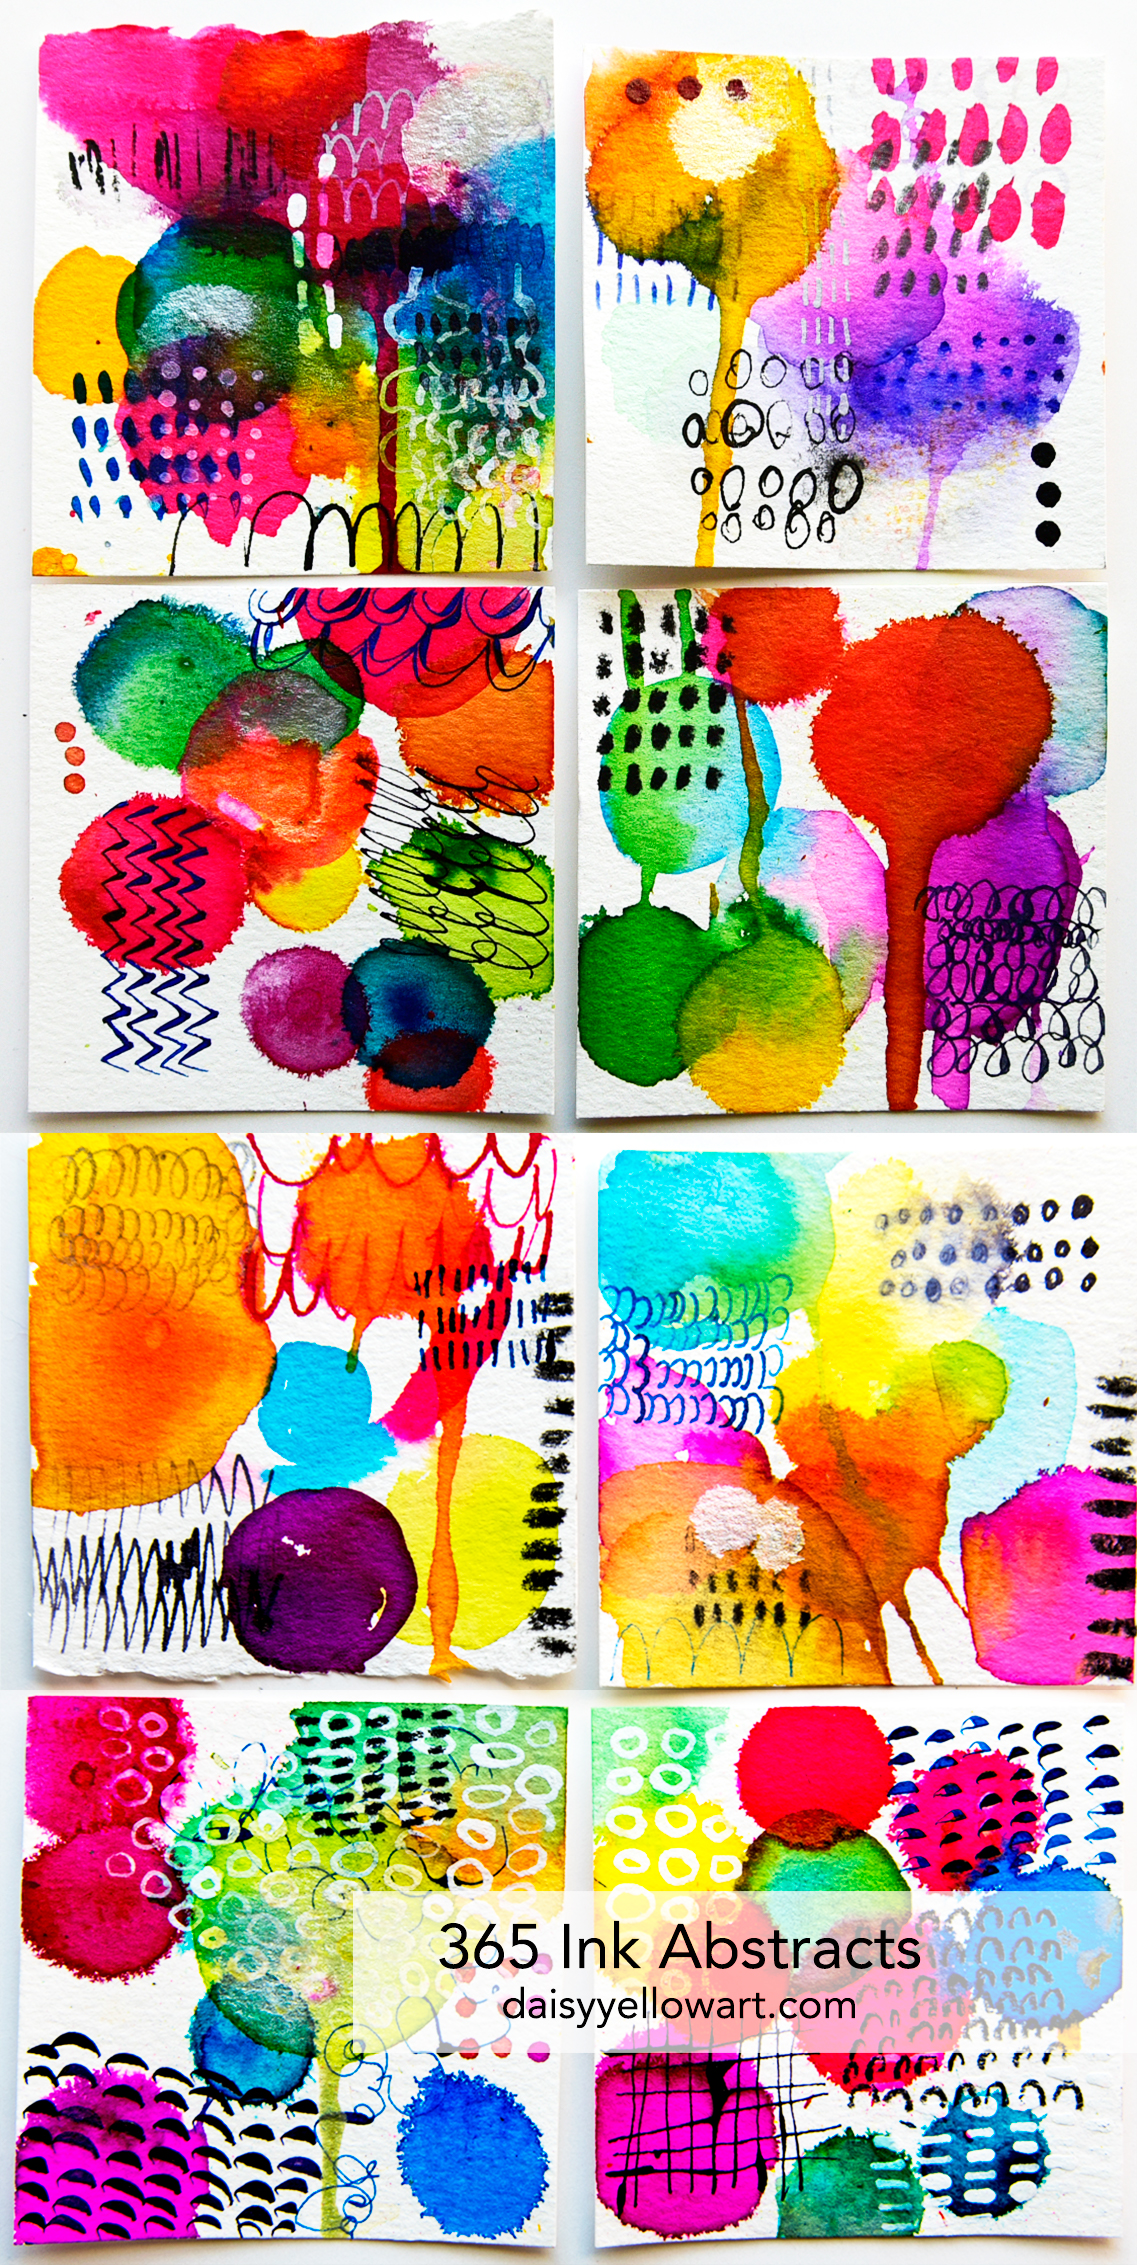 365 ink abstracts by Tammy Garcia https://daisyyellowart.com